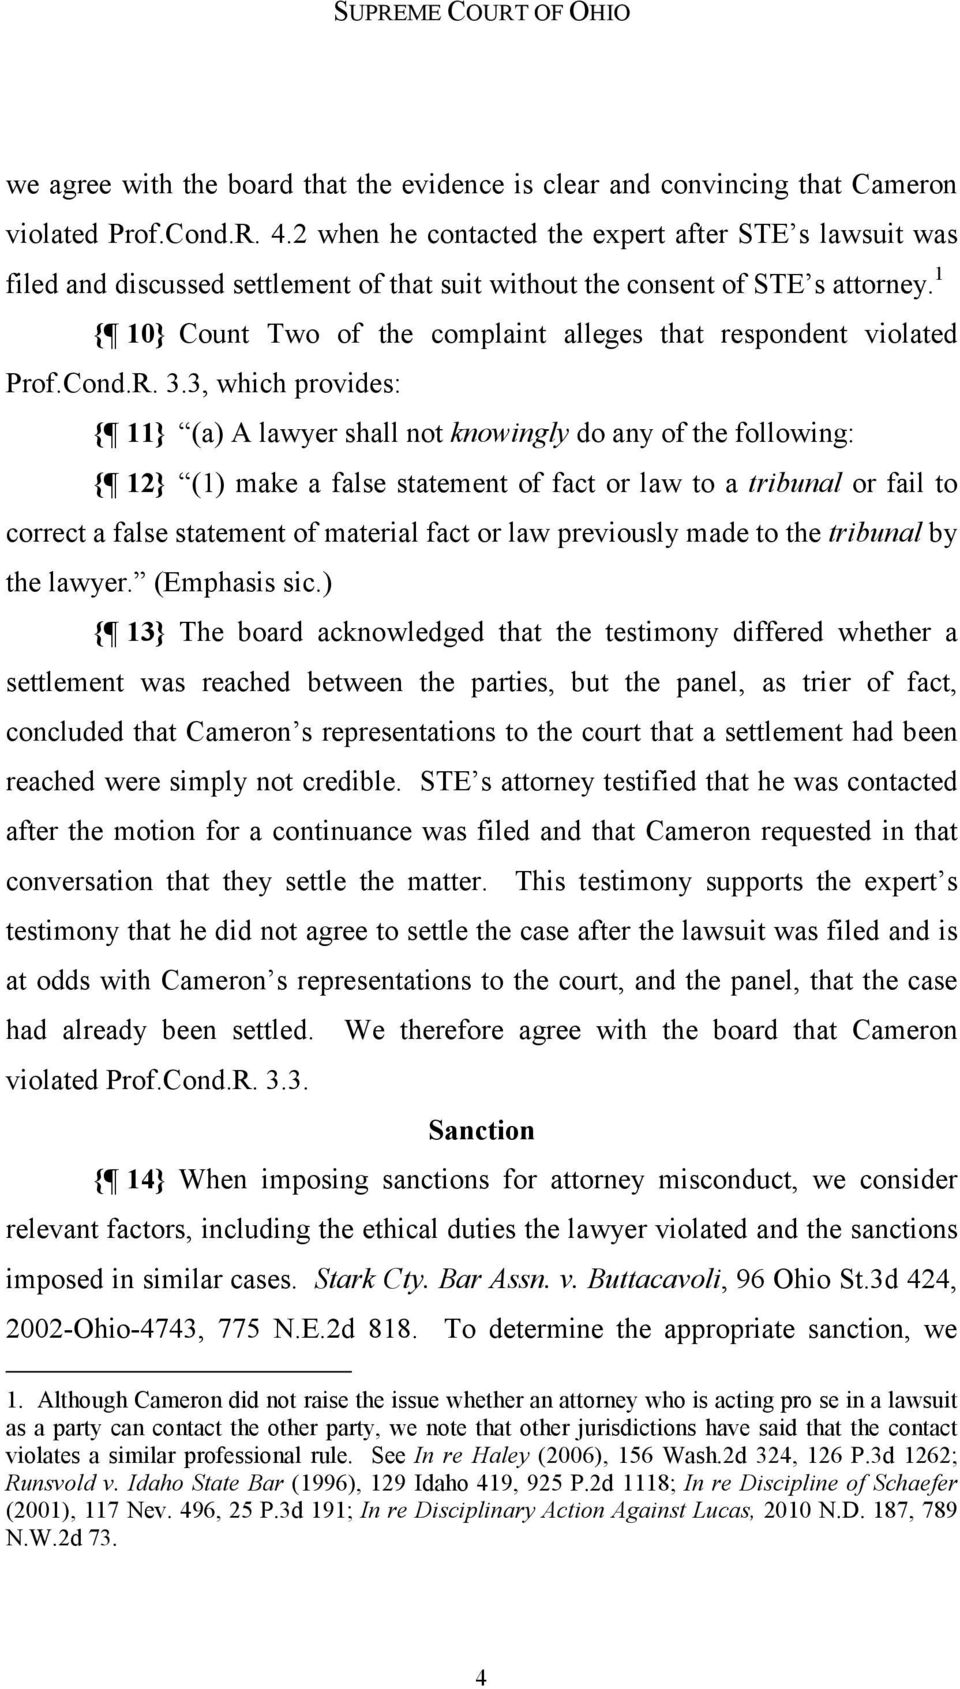 1 { 10} Count Two of the complaint alleges that respondent violated Prof.Cond.R. 3.